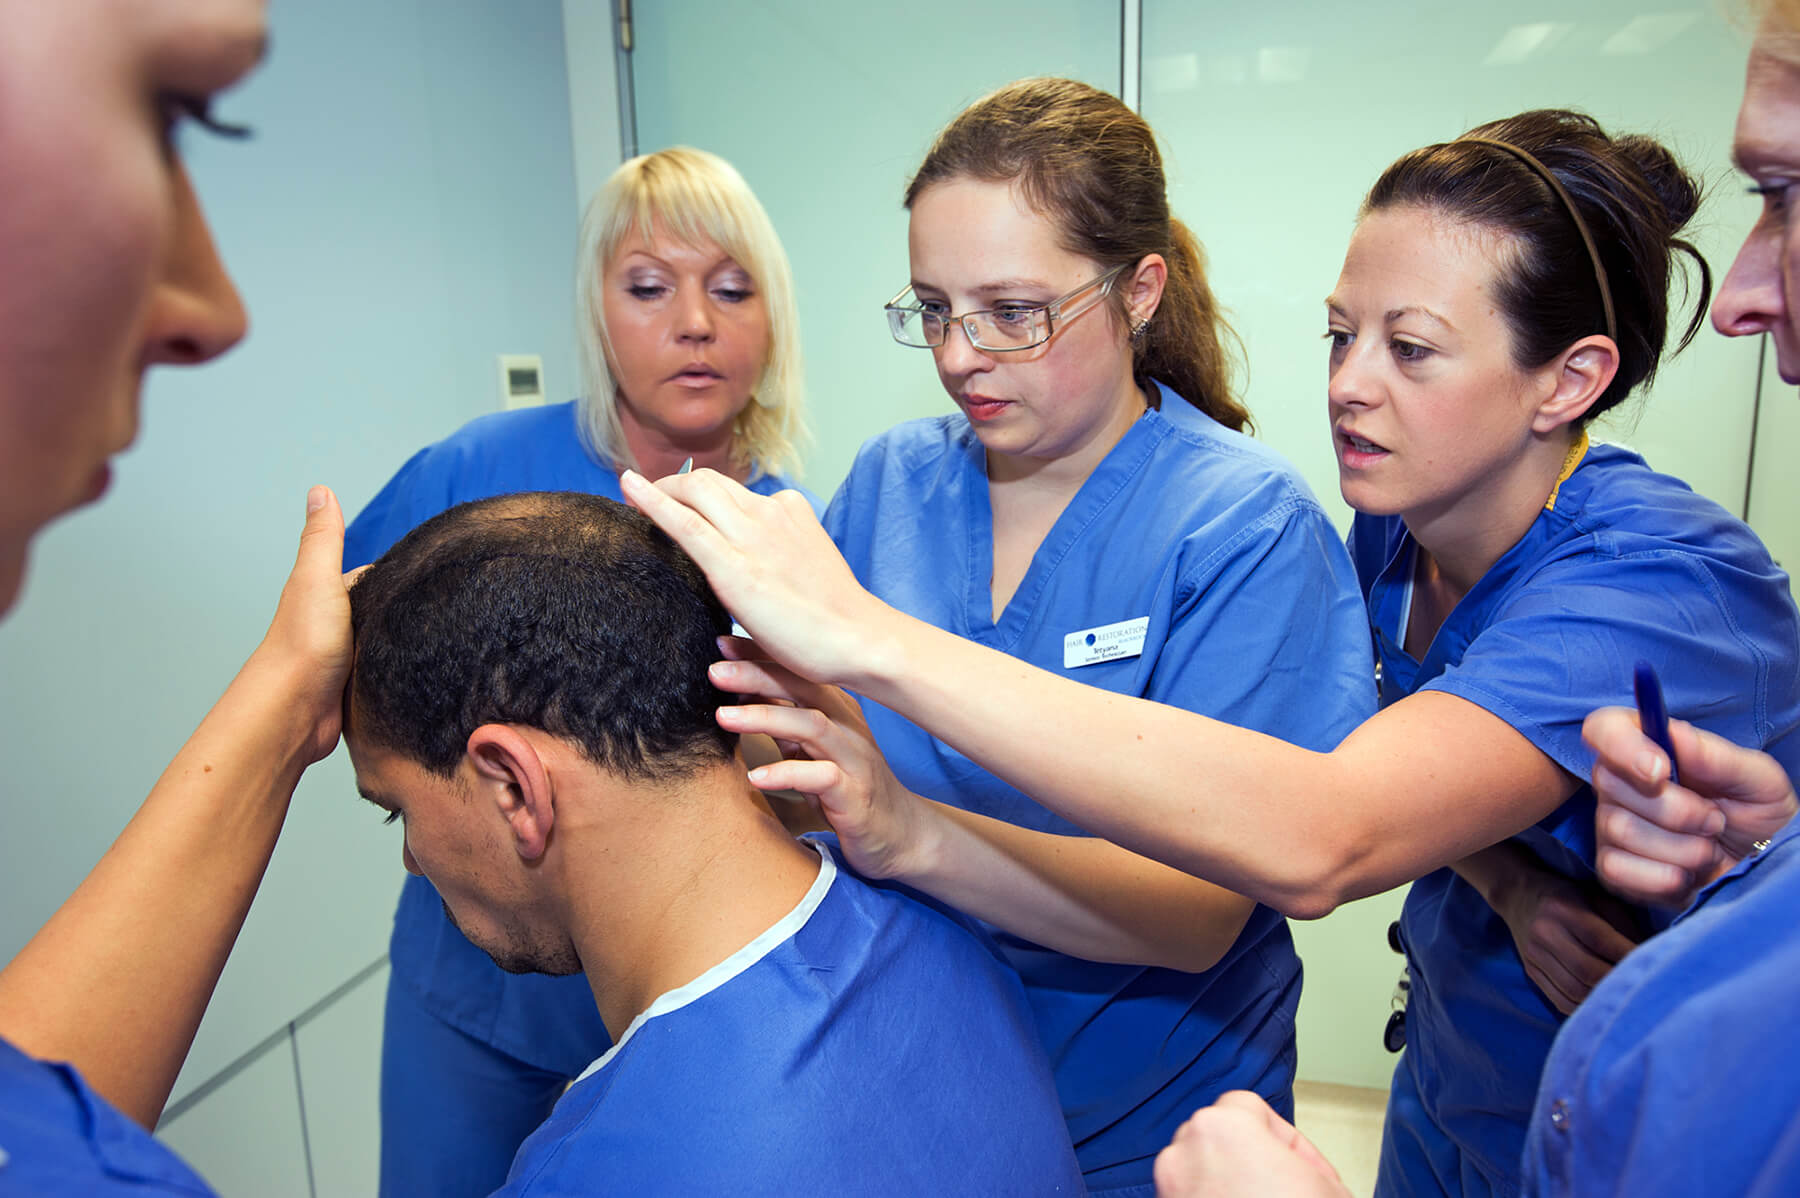 hair loss treatment UK